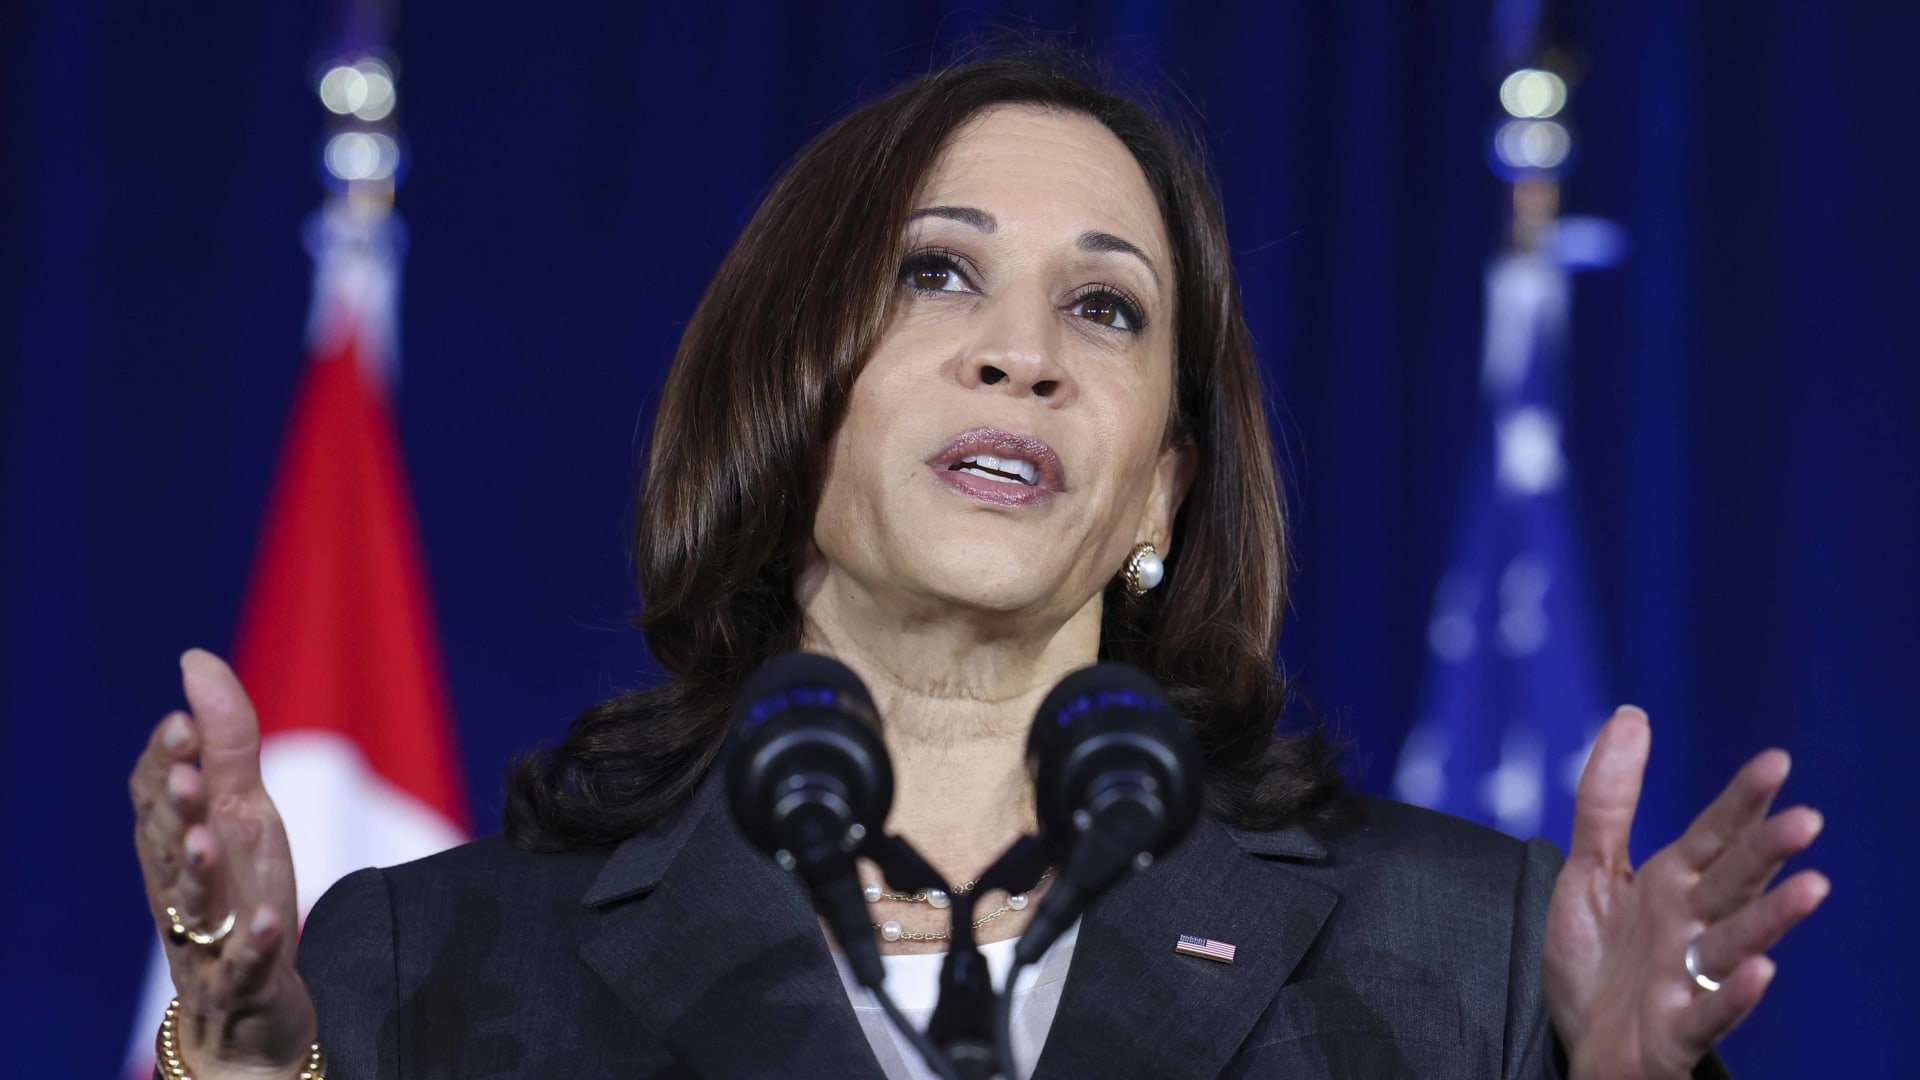 U.S. Vice President Kamala Harris delivers a speech at Gardens by the Bay in Singapore before departing for Vietnam on the second leg of her Southeast Asia trip, Tuesday, Aug. 24, 2021.